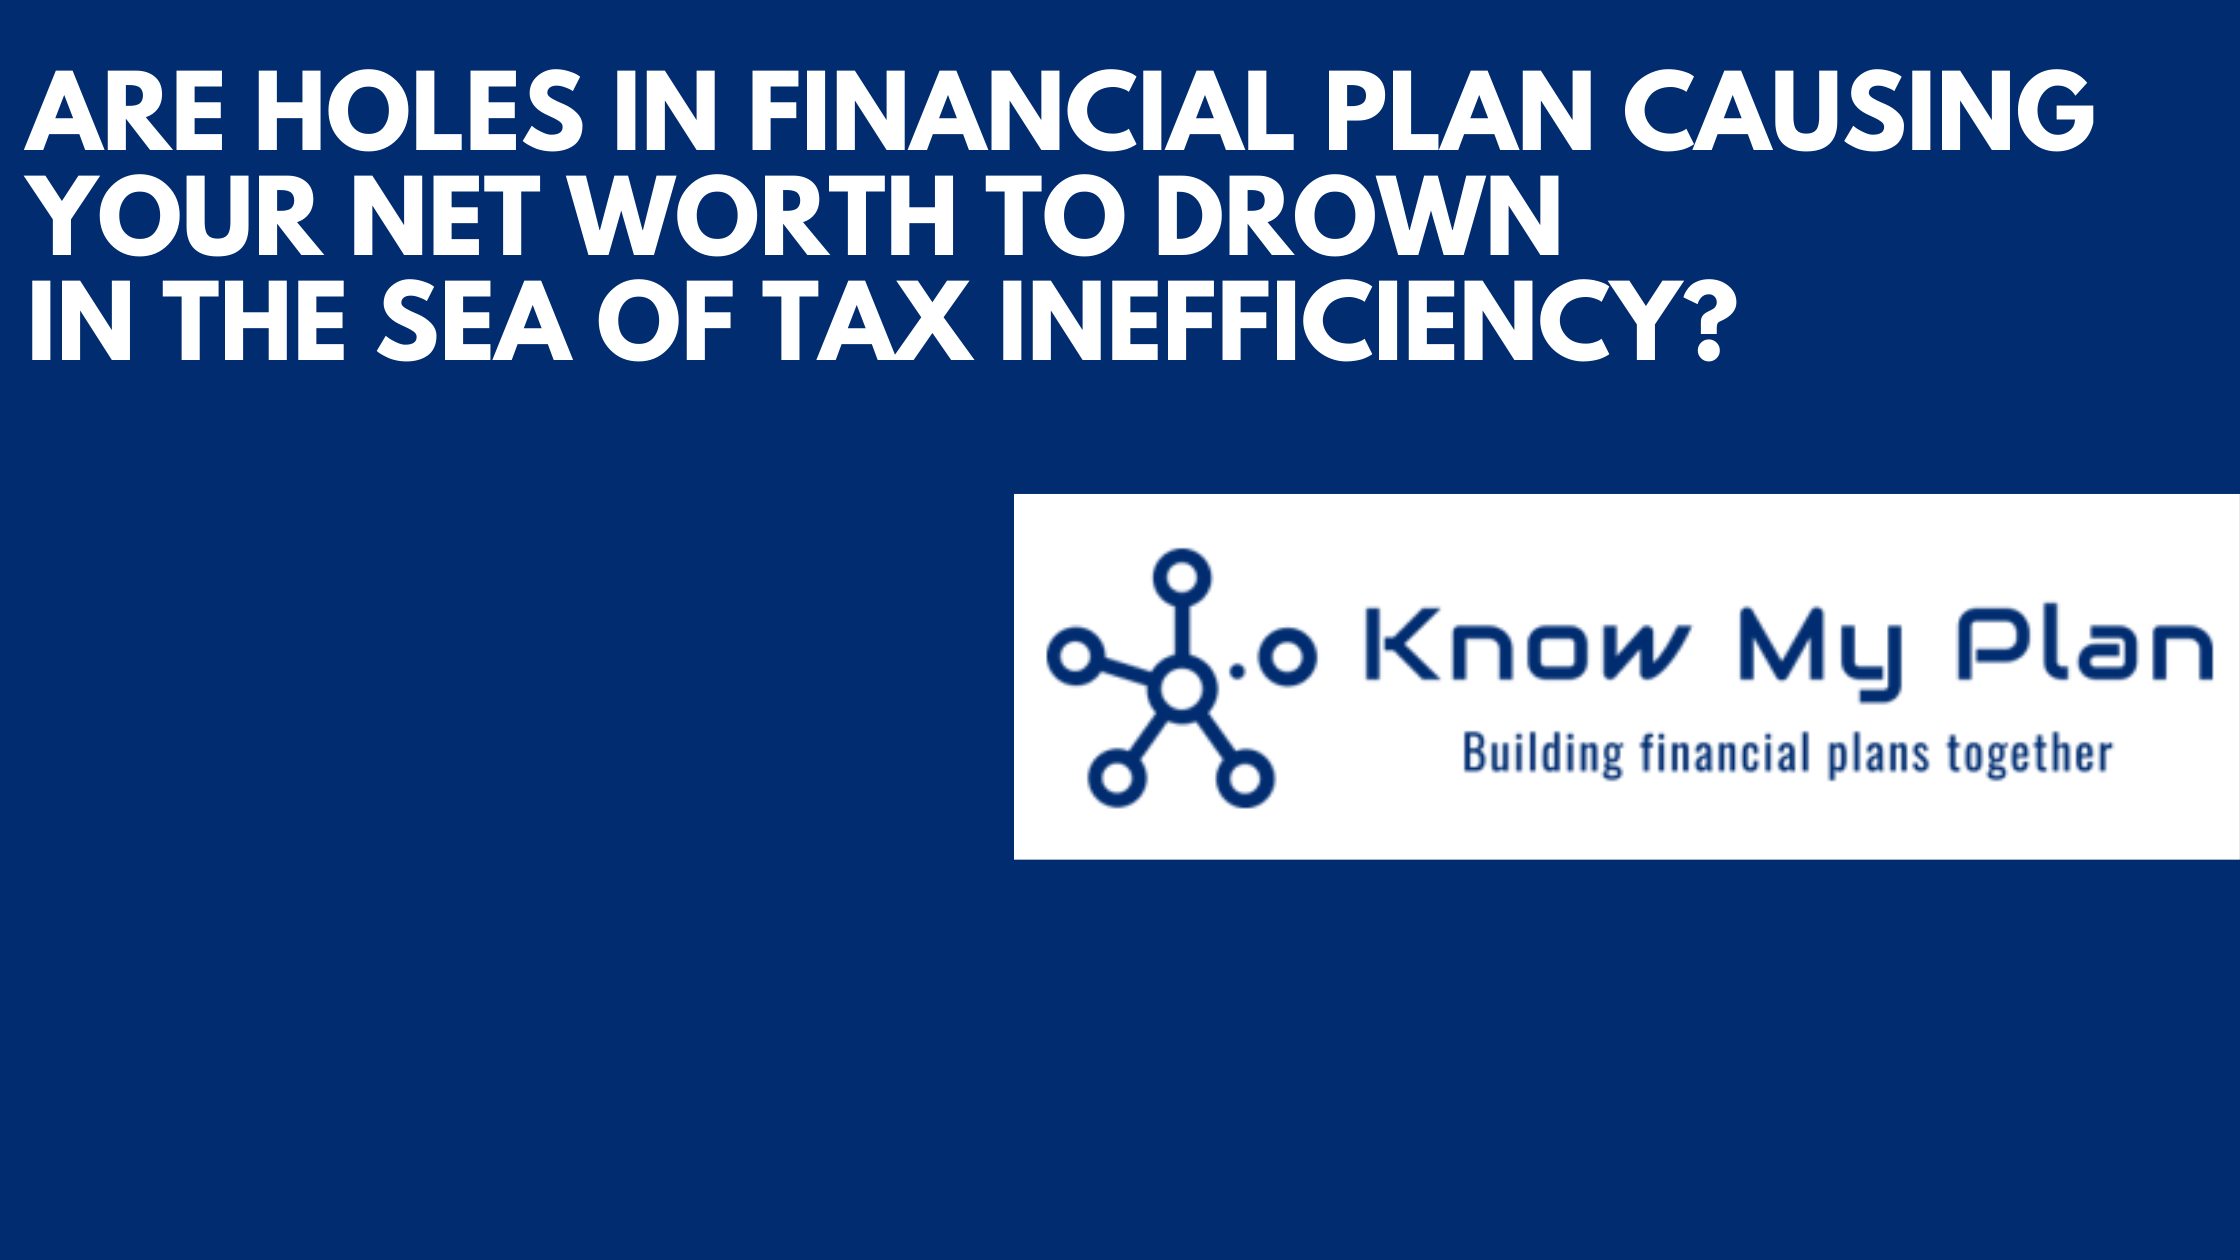 Are Holes In Financial Plan Causing Your Net Worth To Drown In The Sea Of Tax Inefficiency? Thumbnail